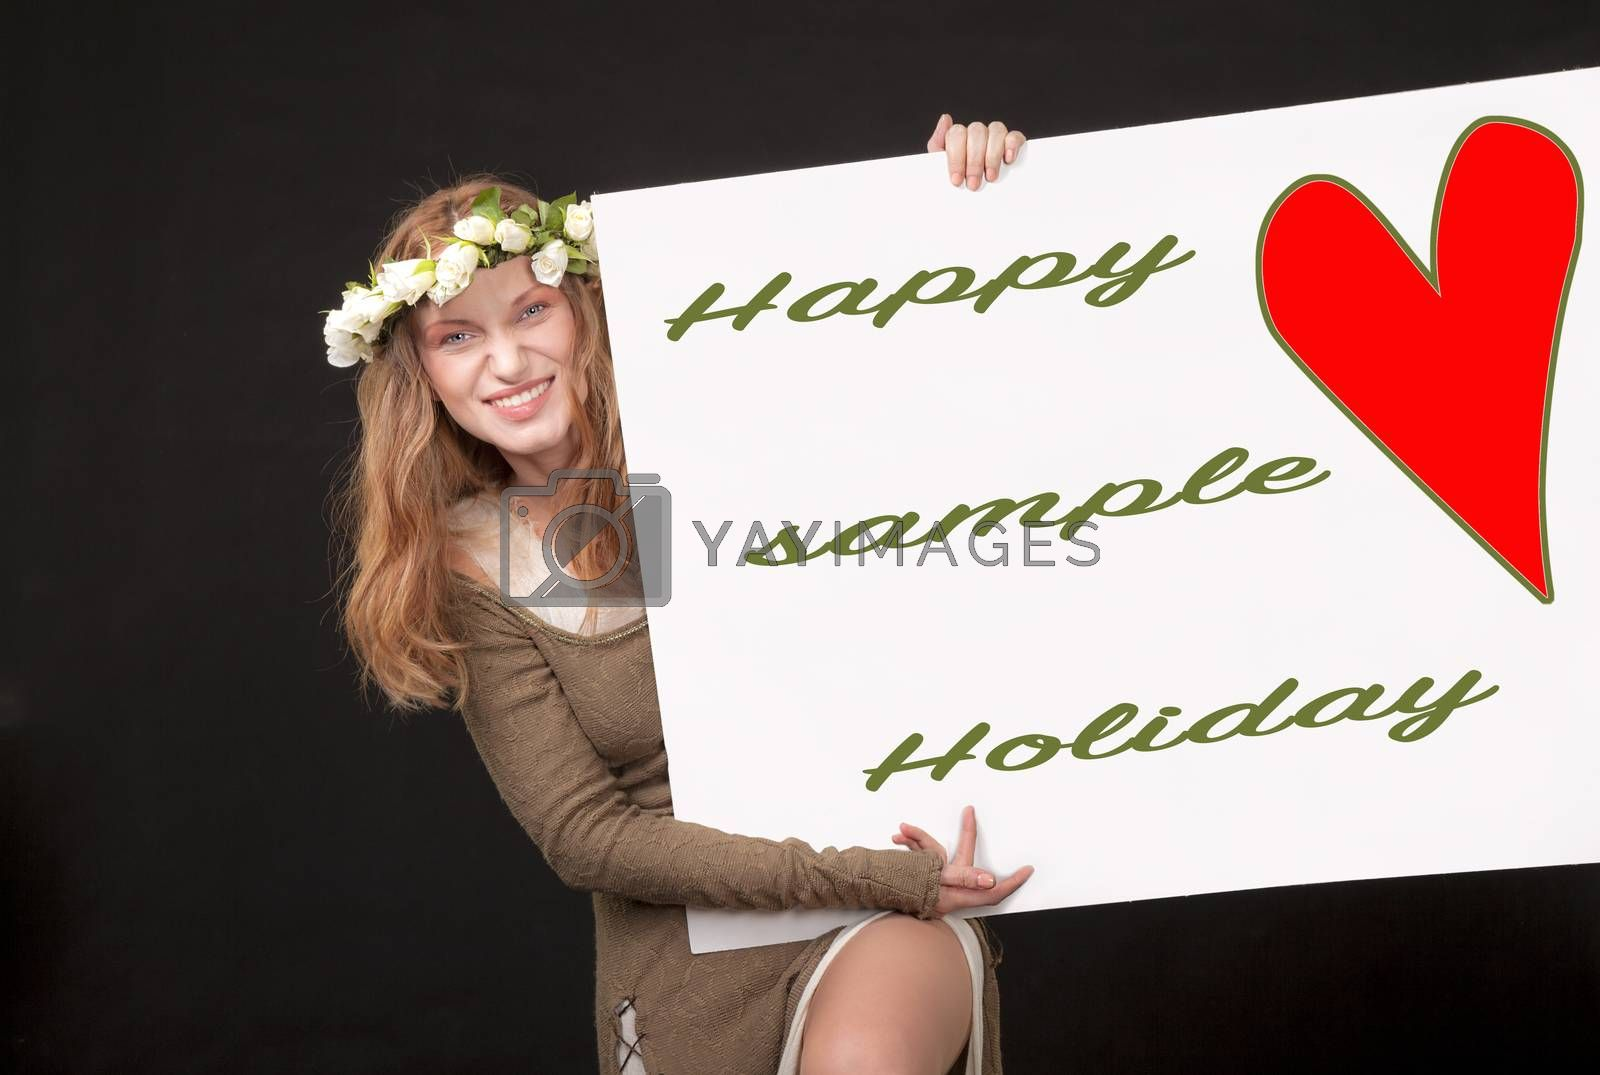 A playful beautiful woman with white roses wreath in her long hair is holding and showing a sign with red heart, sample text and a clipping path.